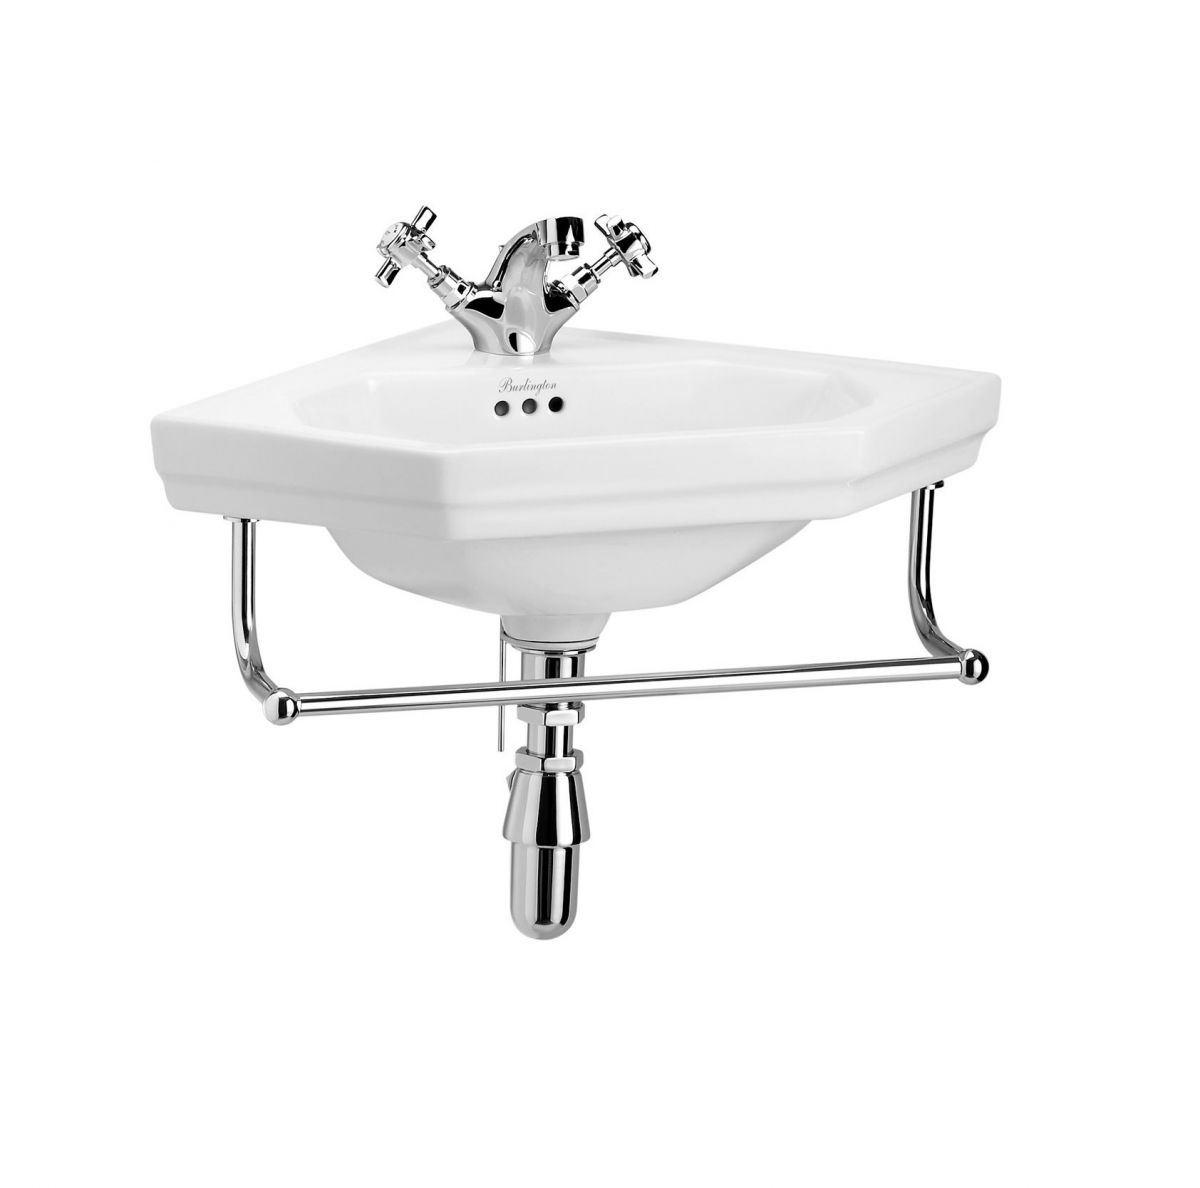 Burlington Victorian Corner Cloakroom Basin Uk Bathrooms